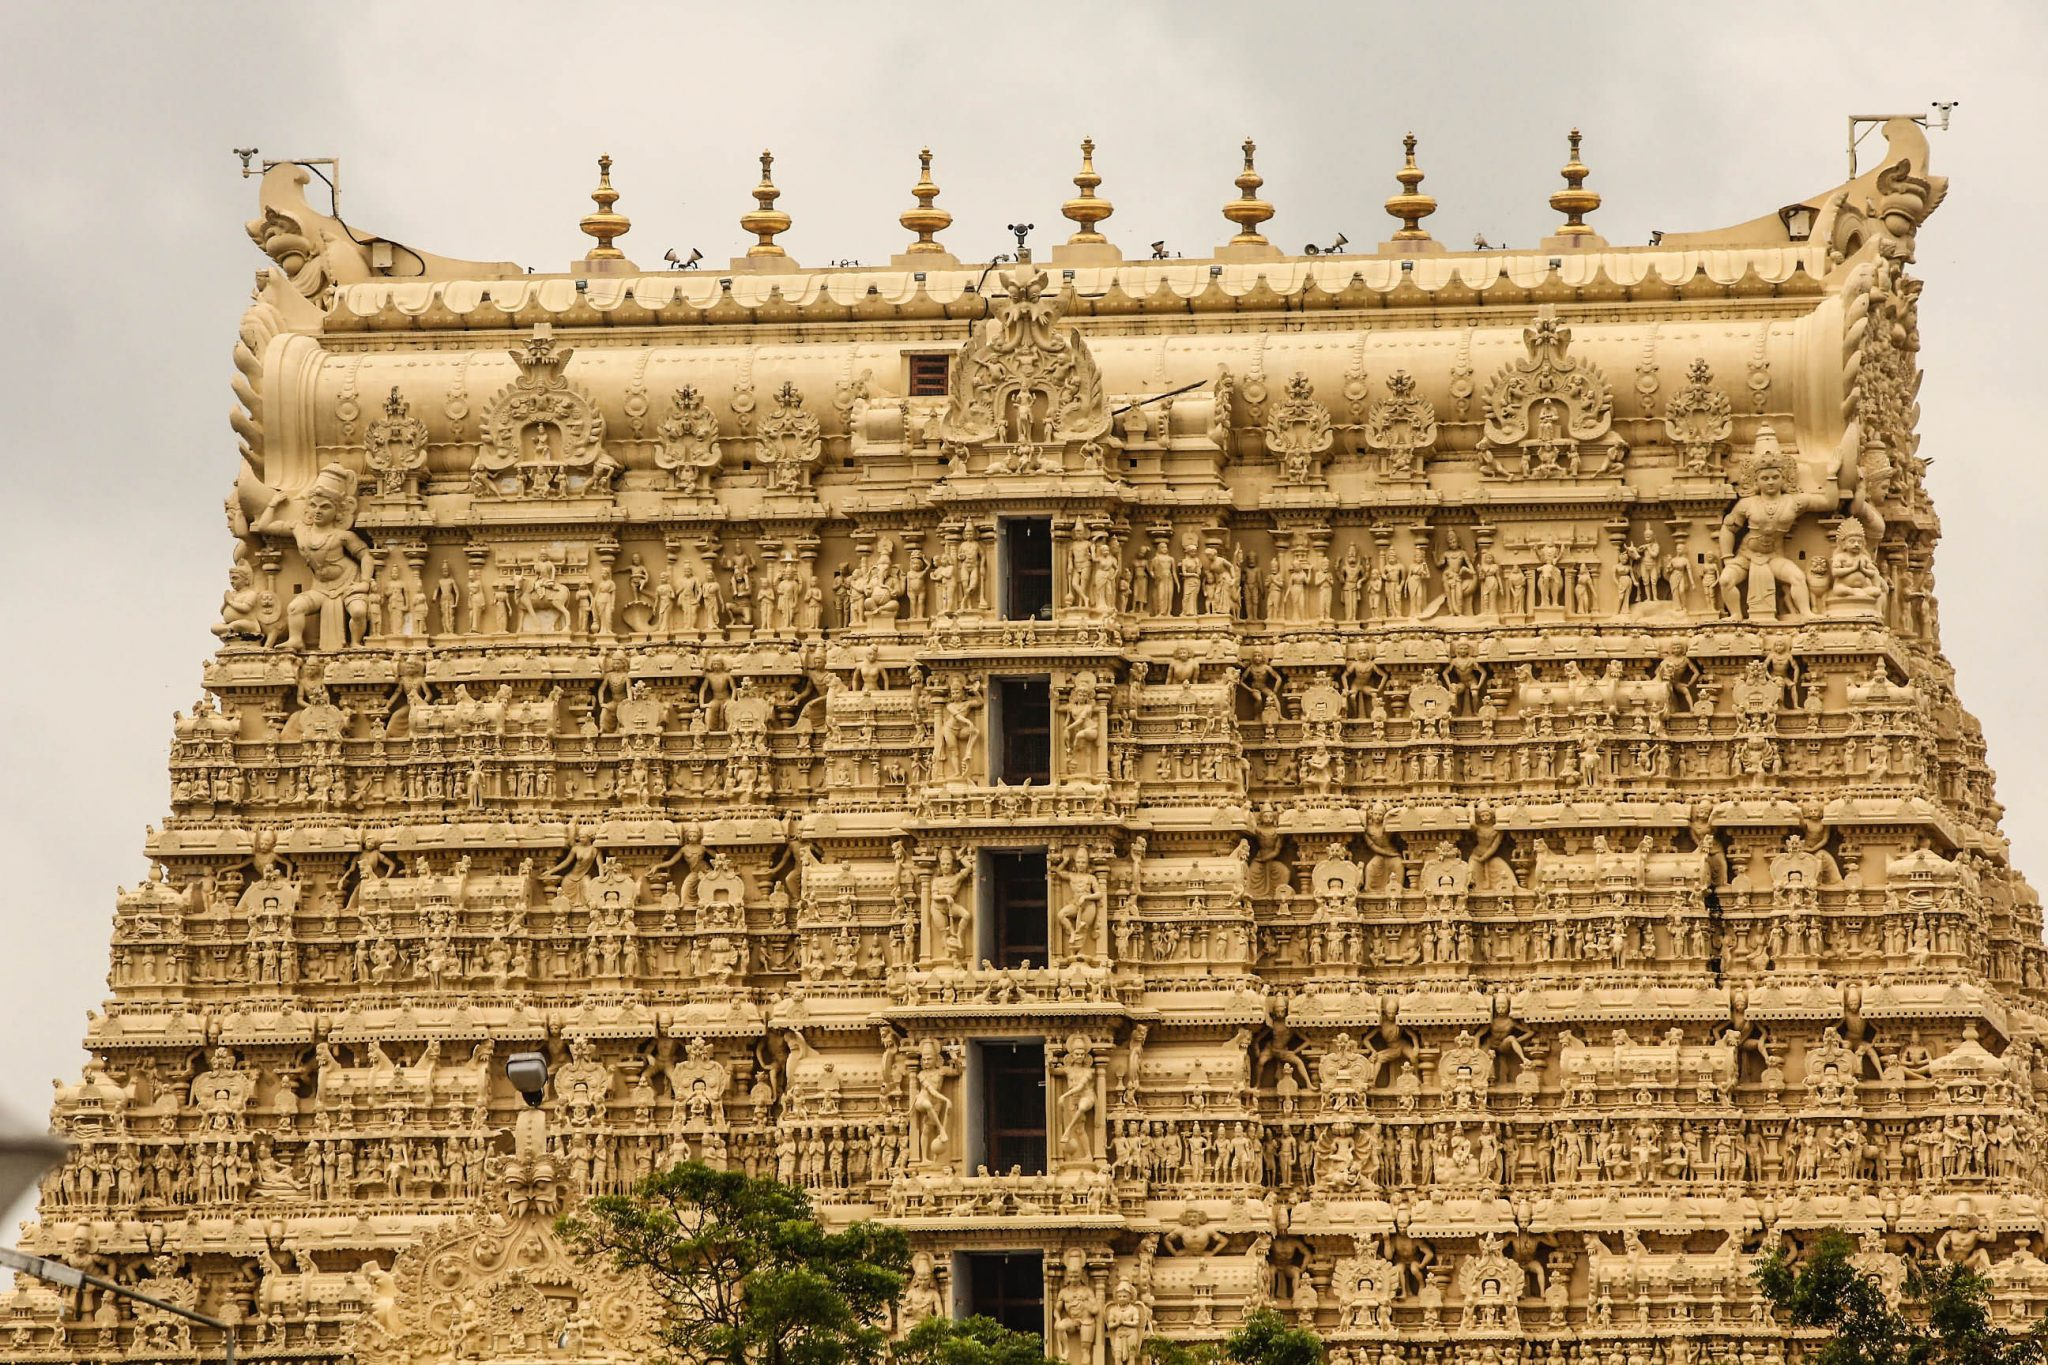 http://comedymood.com/richest-temples-in-india